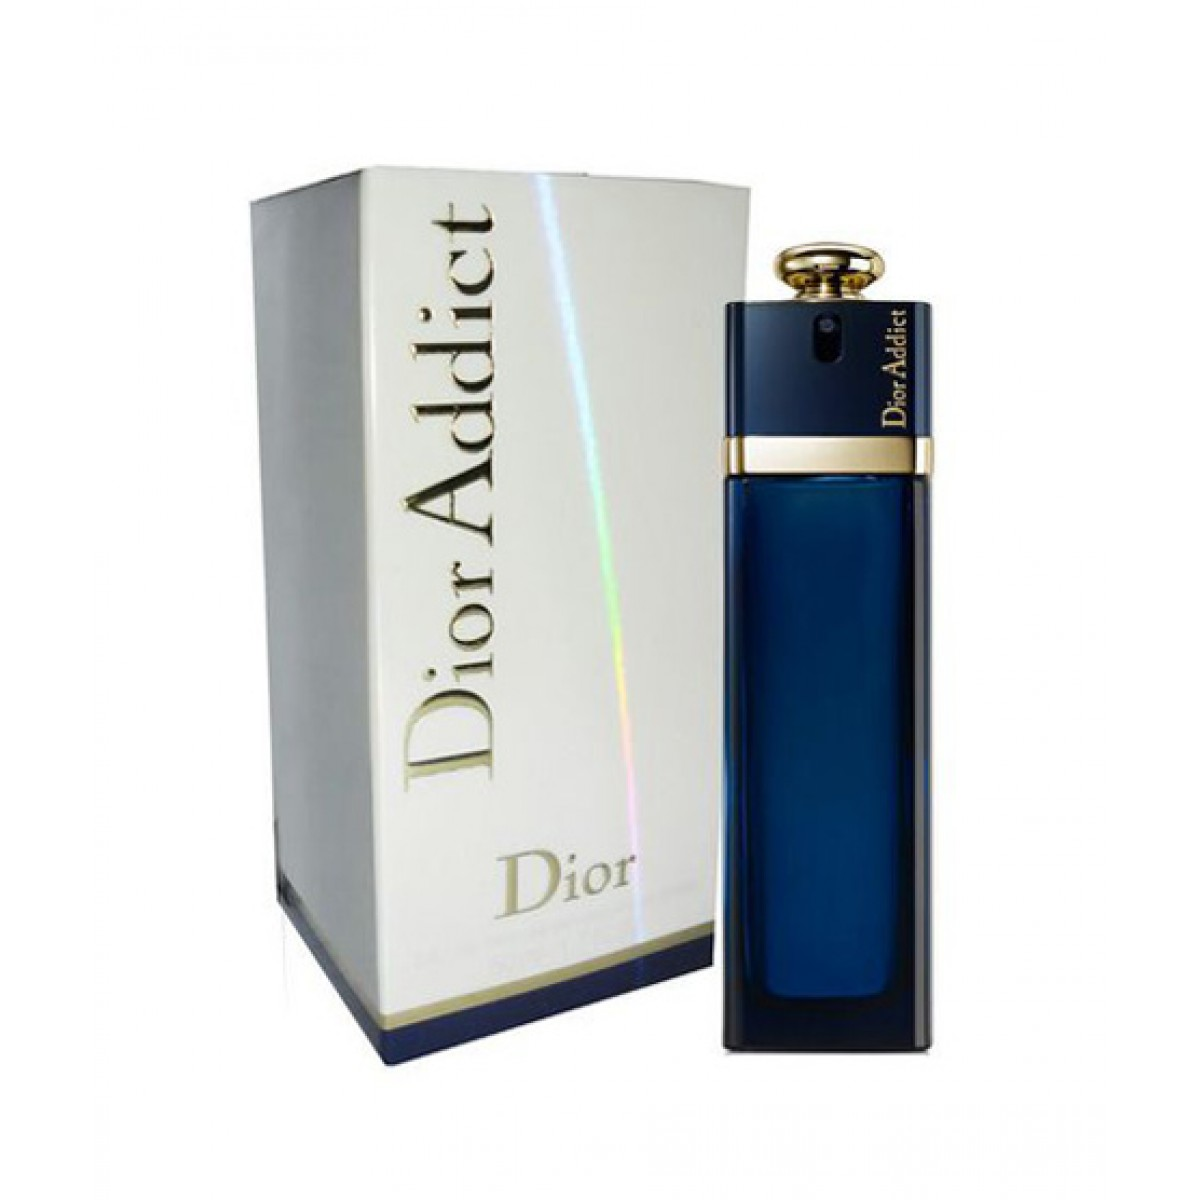 33bc5c45 Christian Dior Addict Eau De Parfum For Women 100ml